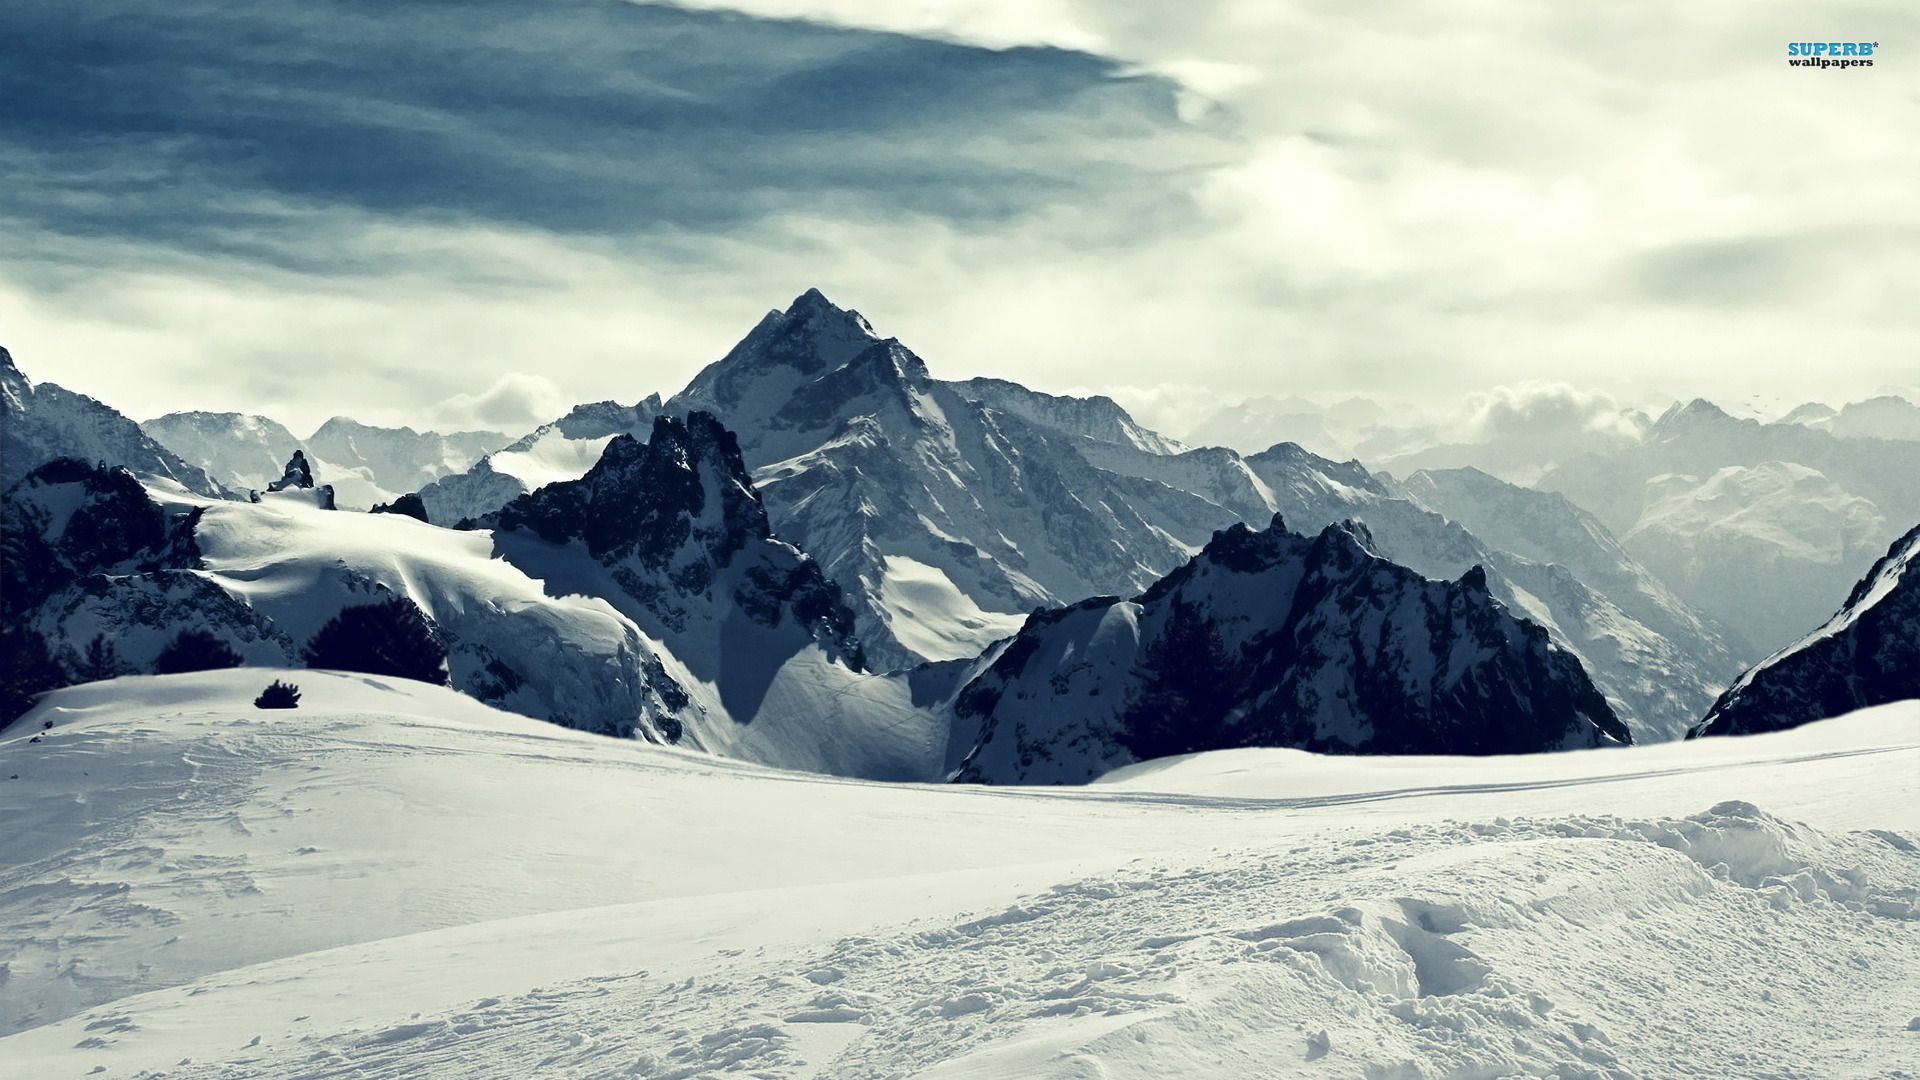 Mountains Hd Wallpaper Background Images Mountain Wallpaper Mountain Pictures Mountain Landscape